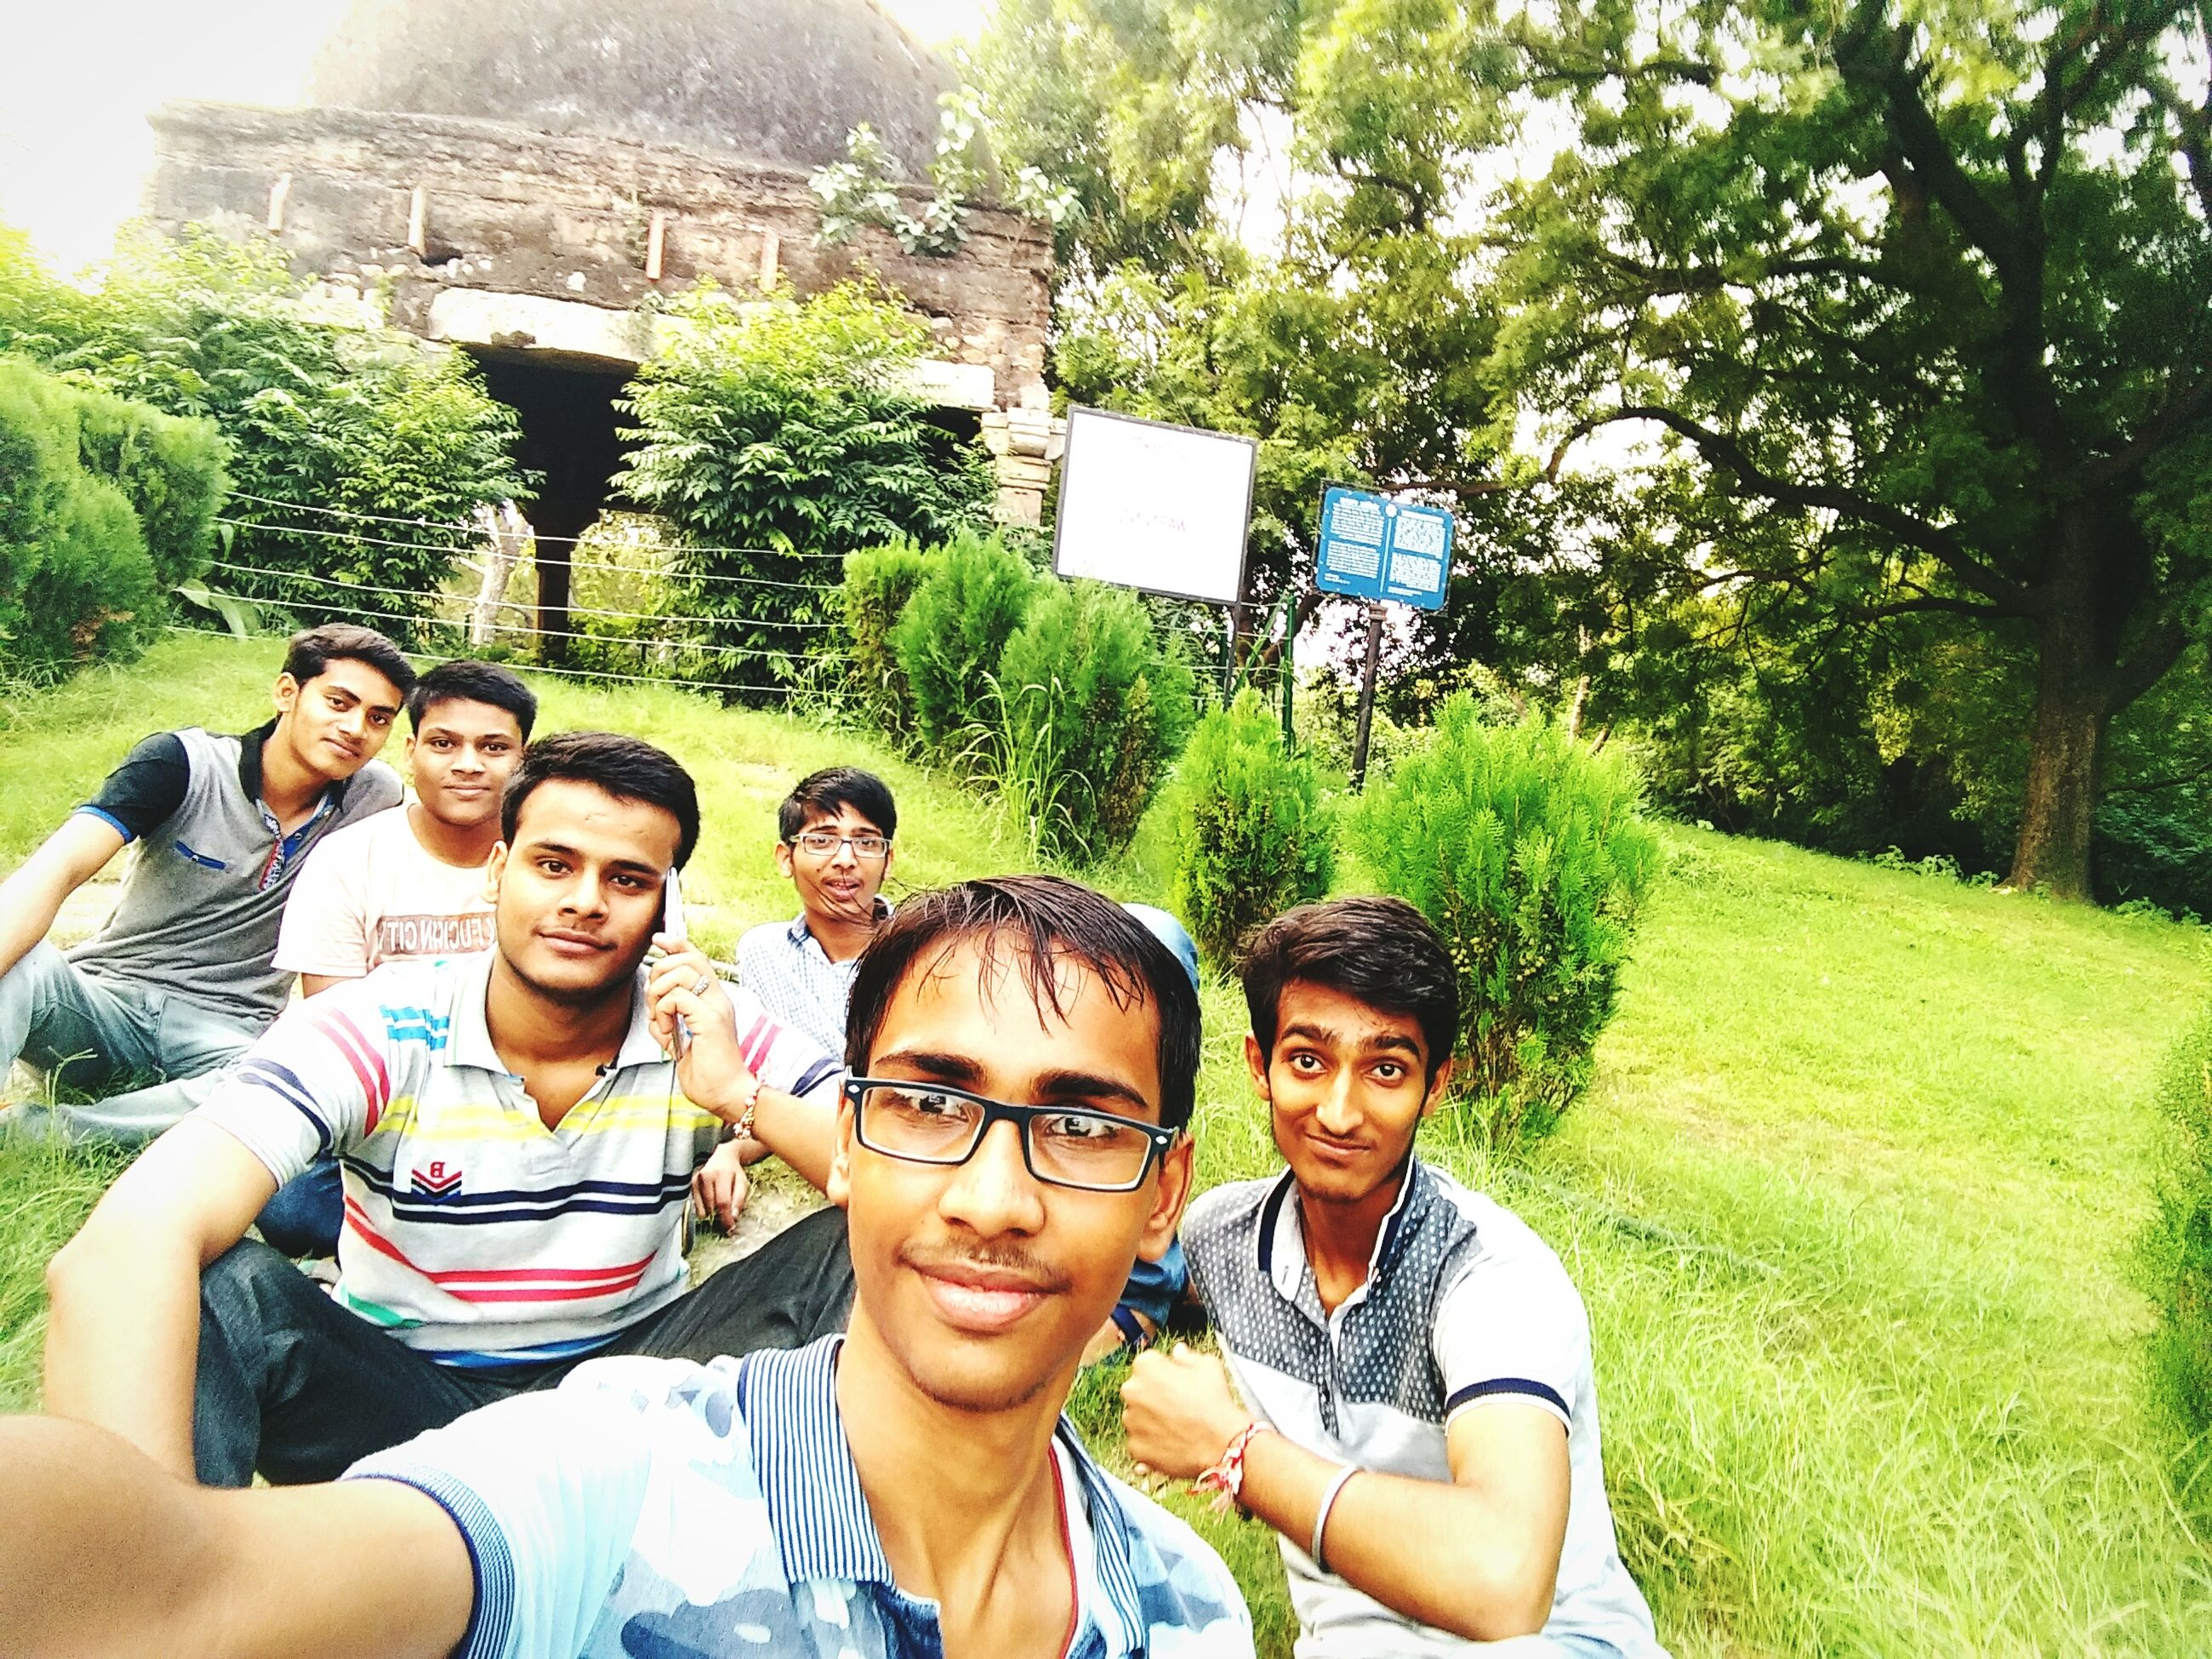 togetherness, tree, bonding, friendship, young women, love, leisure activity, young adult, standing, lifestyles, casual clothing, looking at camera, plant, front view, green color, person, day, park, looking, weekend activities, outdoors, friends